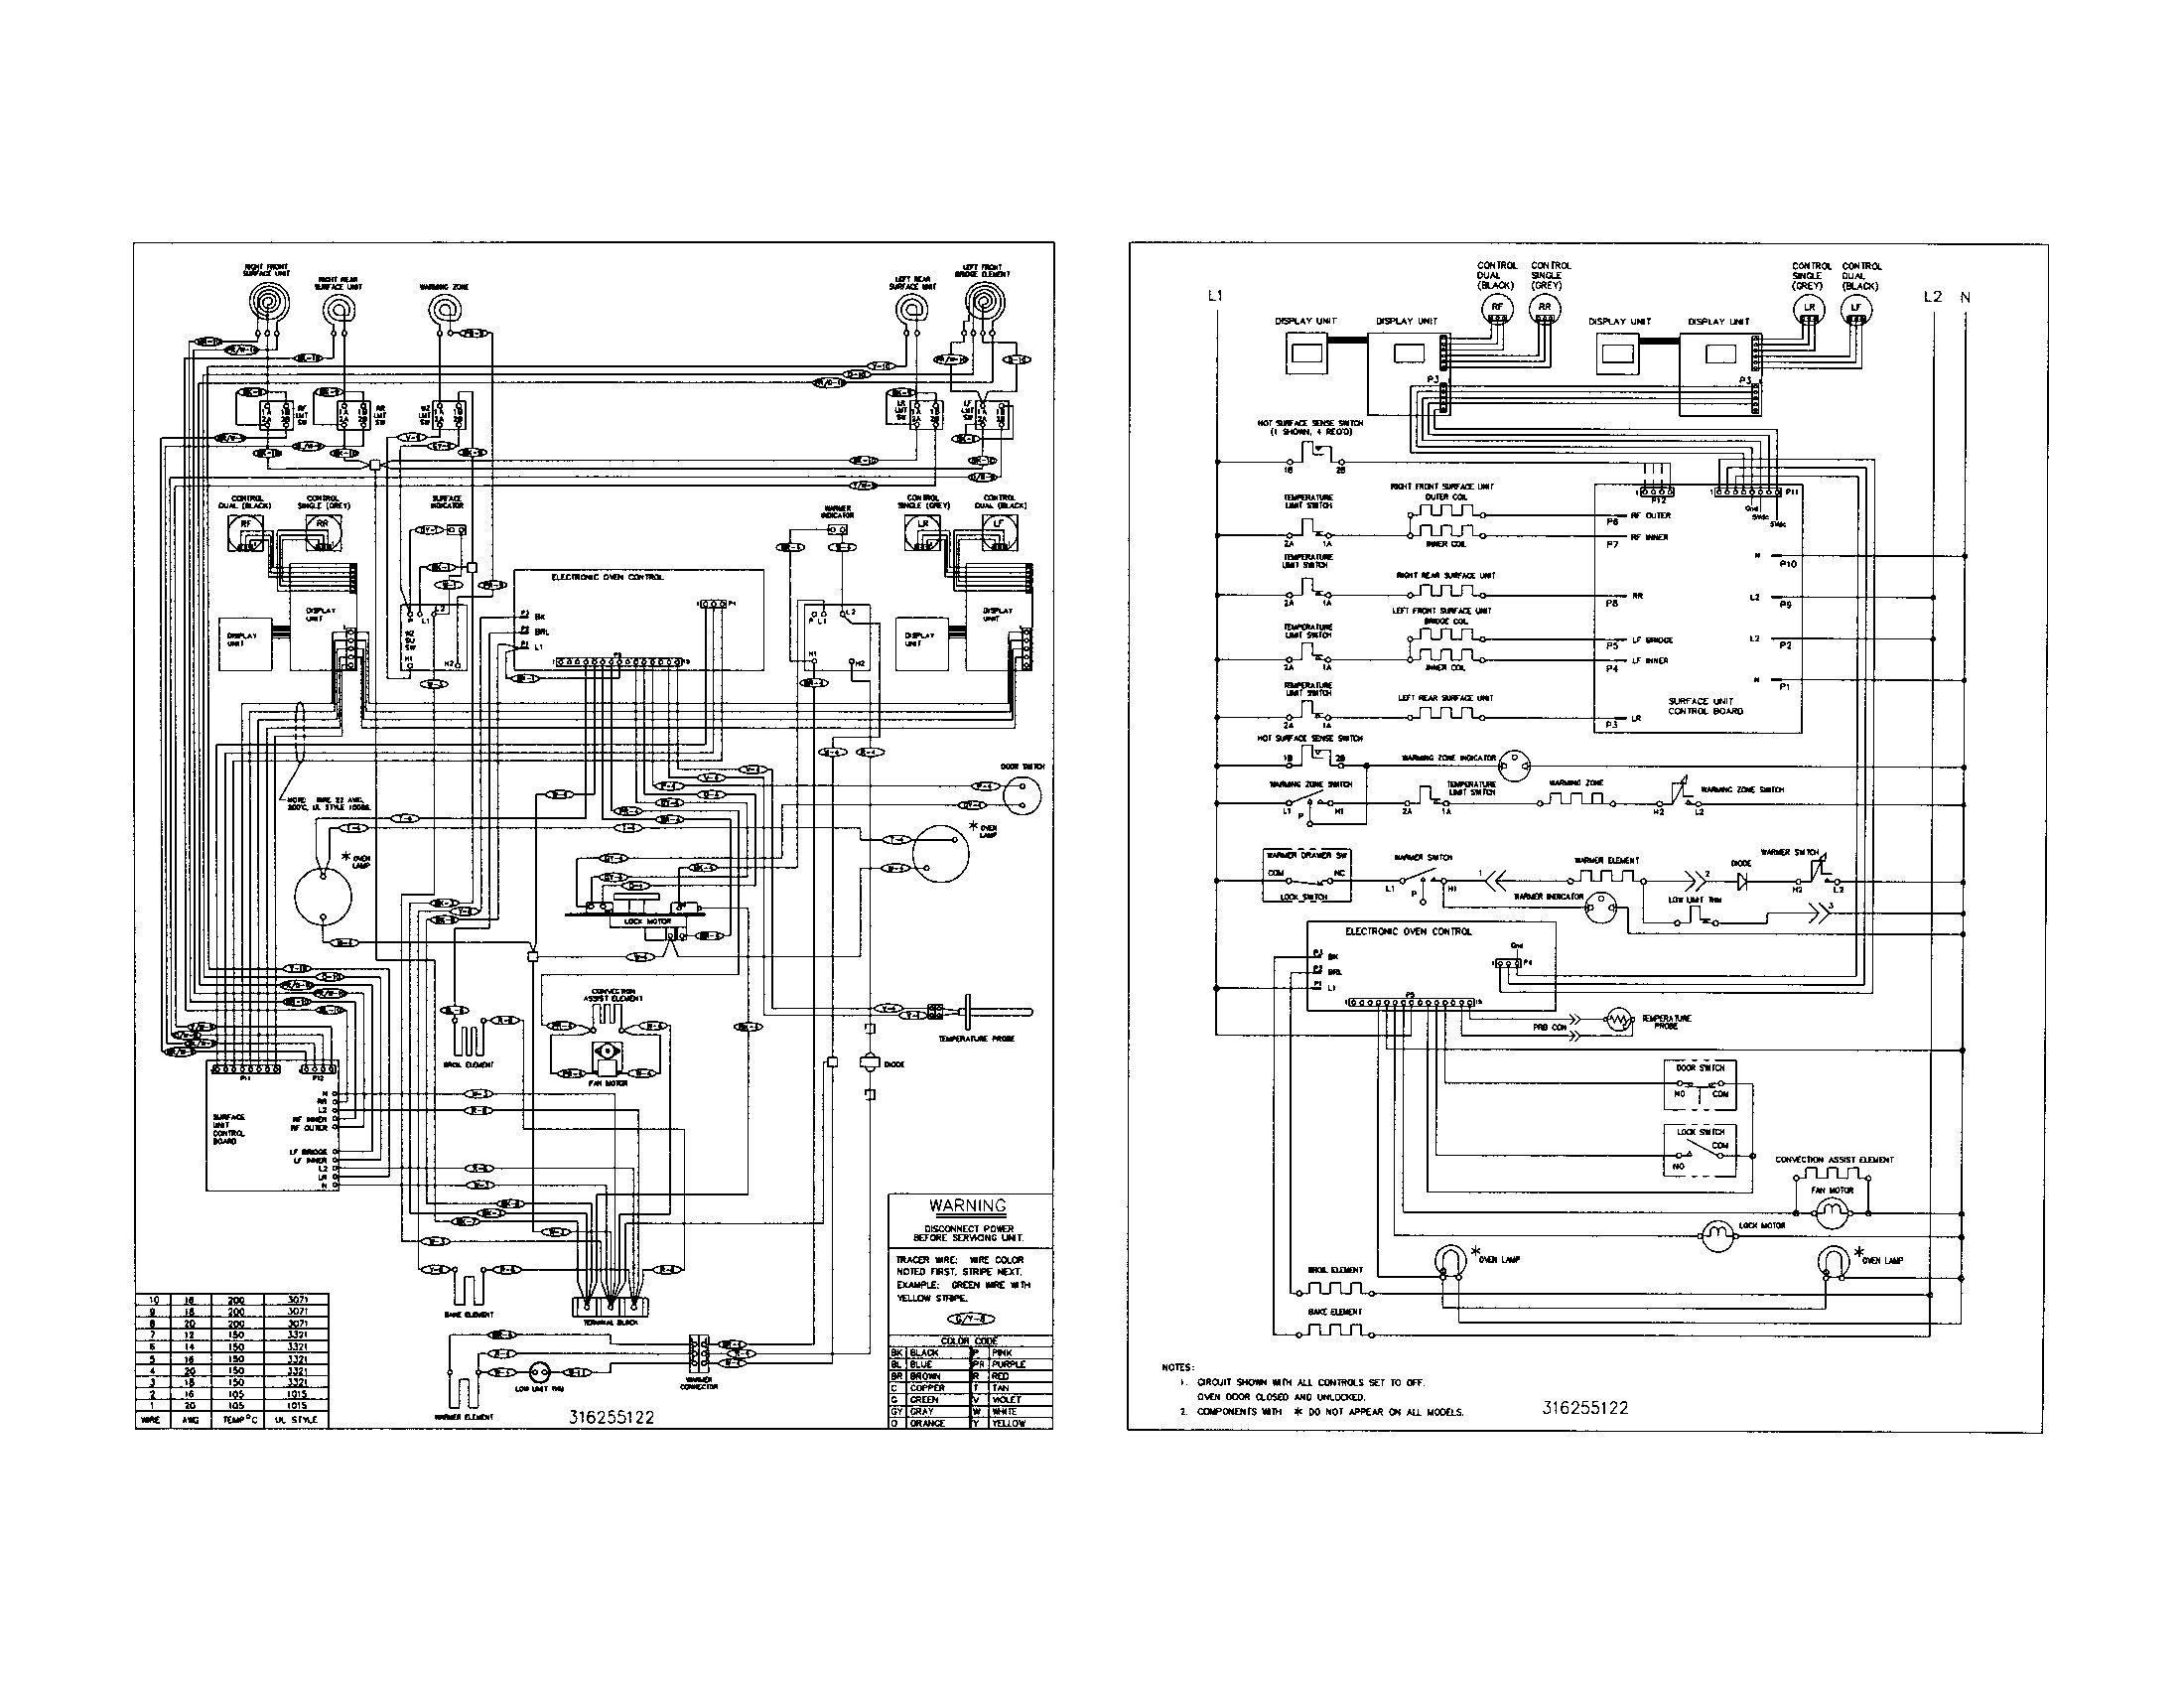 Kenmore Dishwasher Wiring Diagram